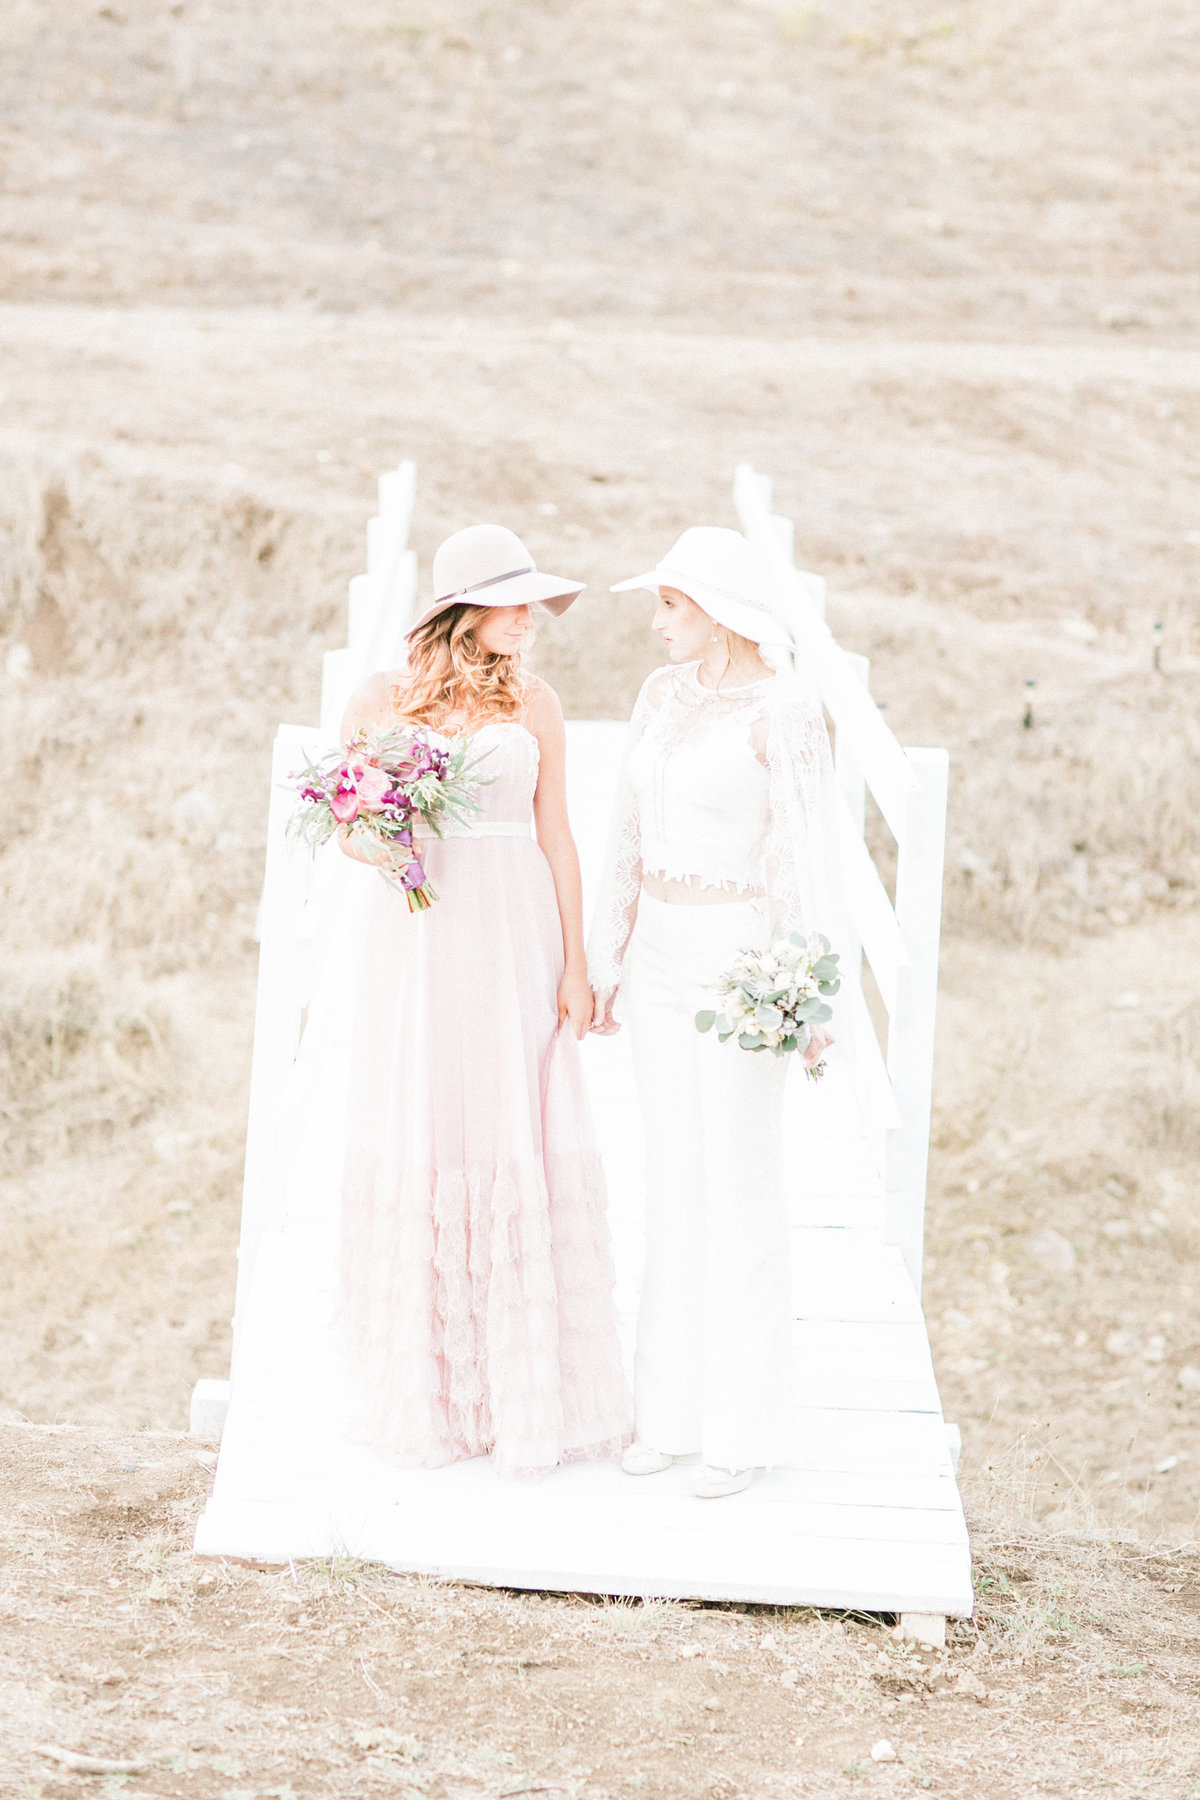 JuLee Love is Love Wedding Dress Designer